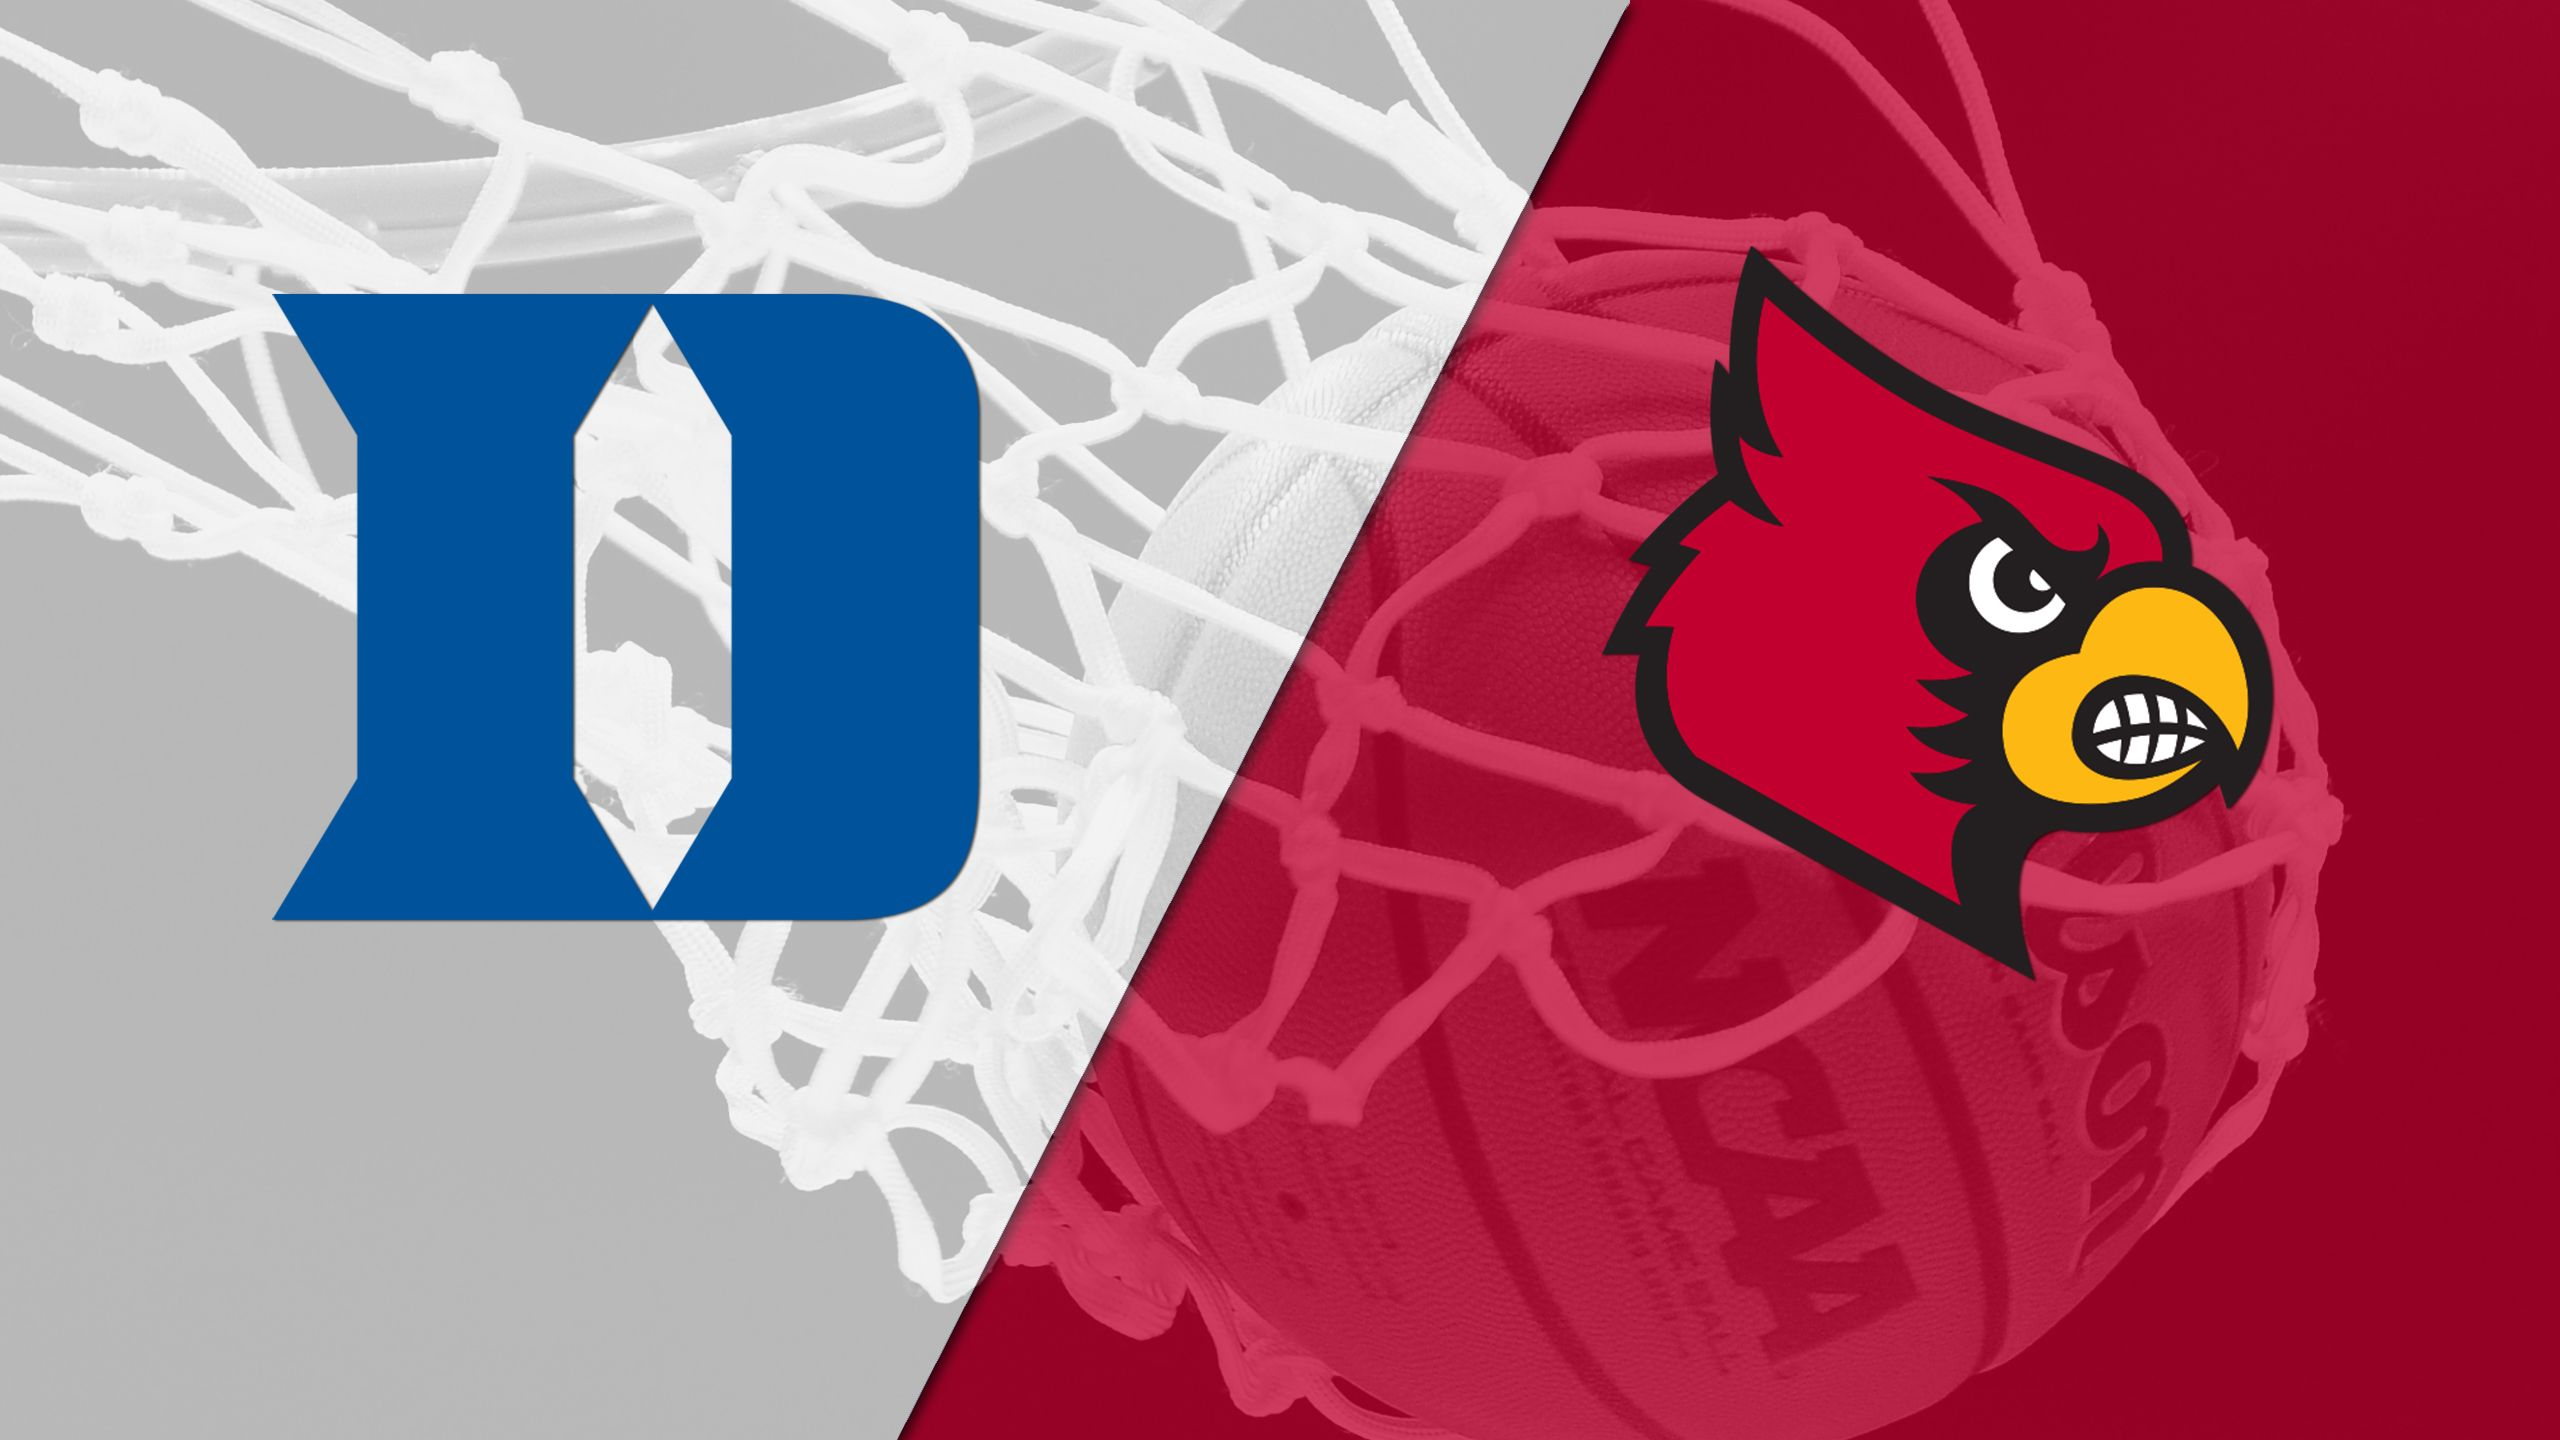 #14 Duke vs. #10 Louisville (Quarterfinal #2) (ACC Men's Tournament)